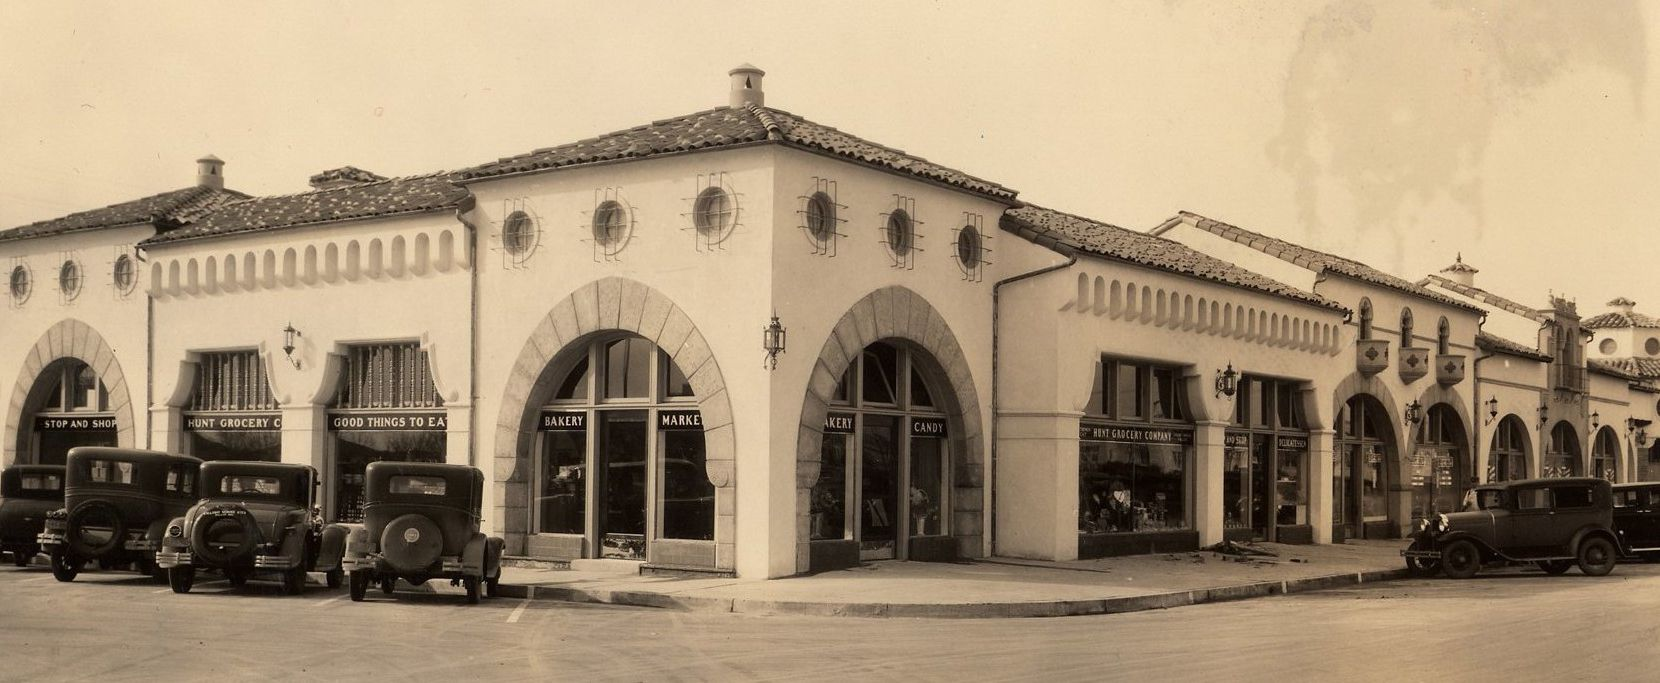 Highland Park Village opened in 1931. It's considered the country's first shopping center by the Urban Land Institute.